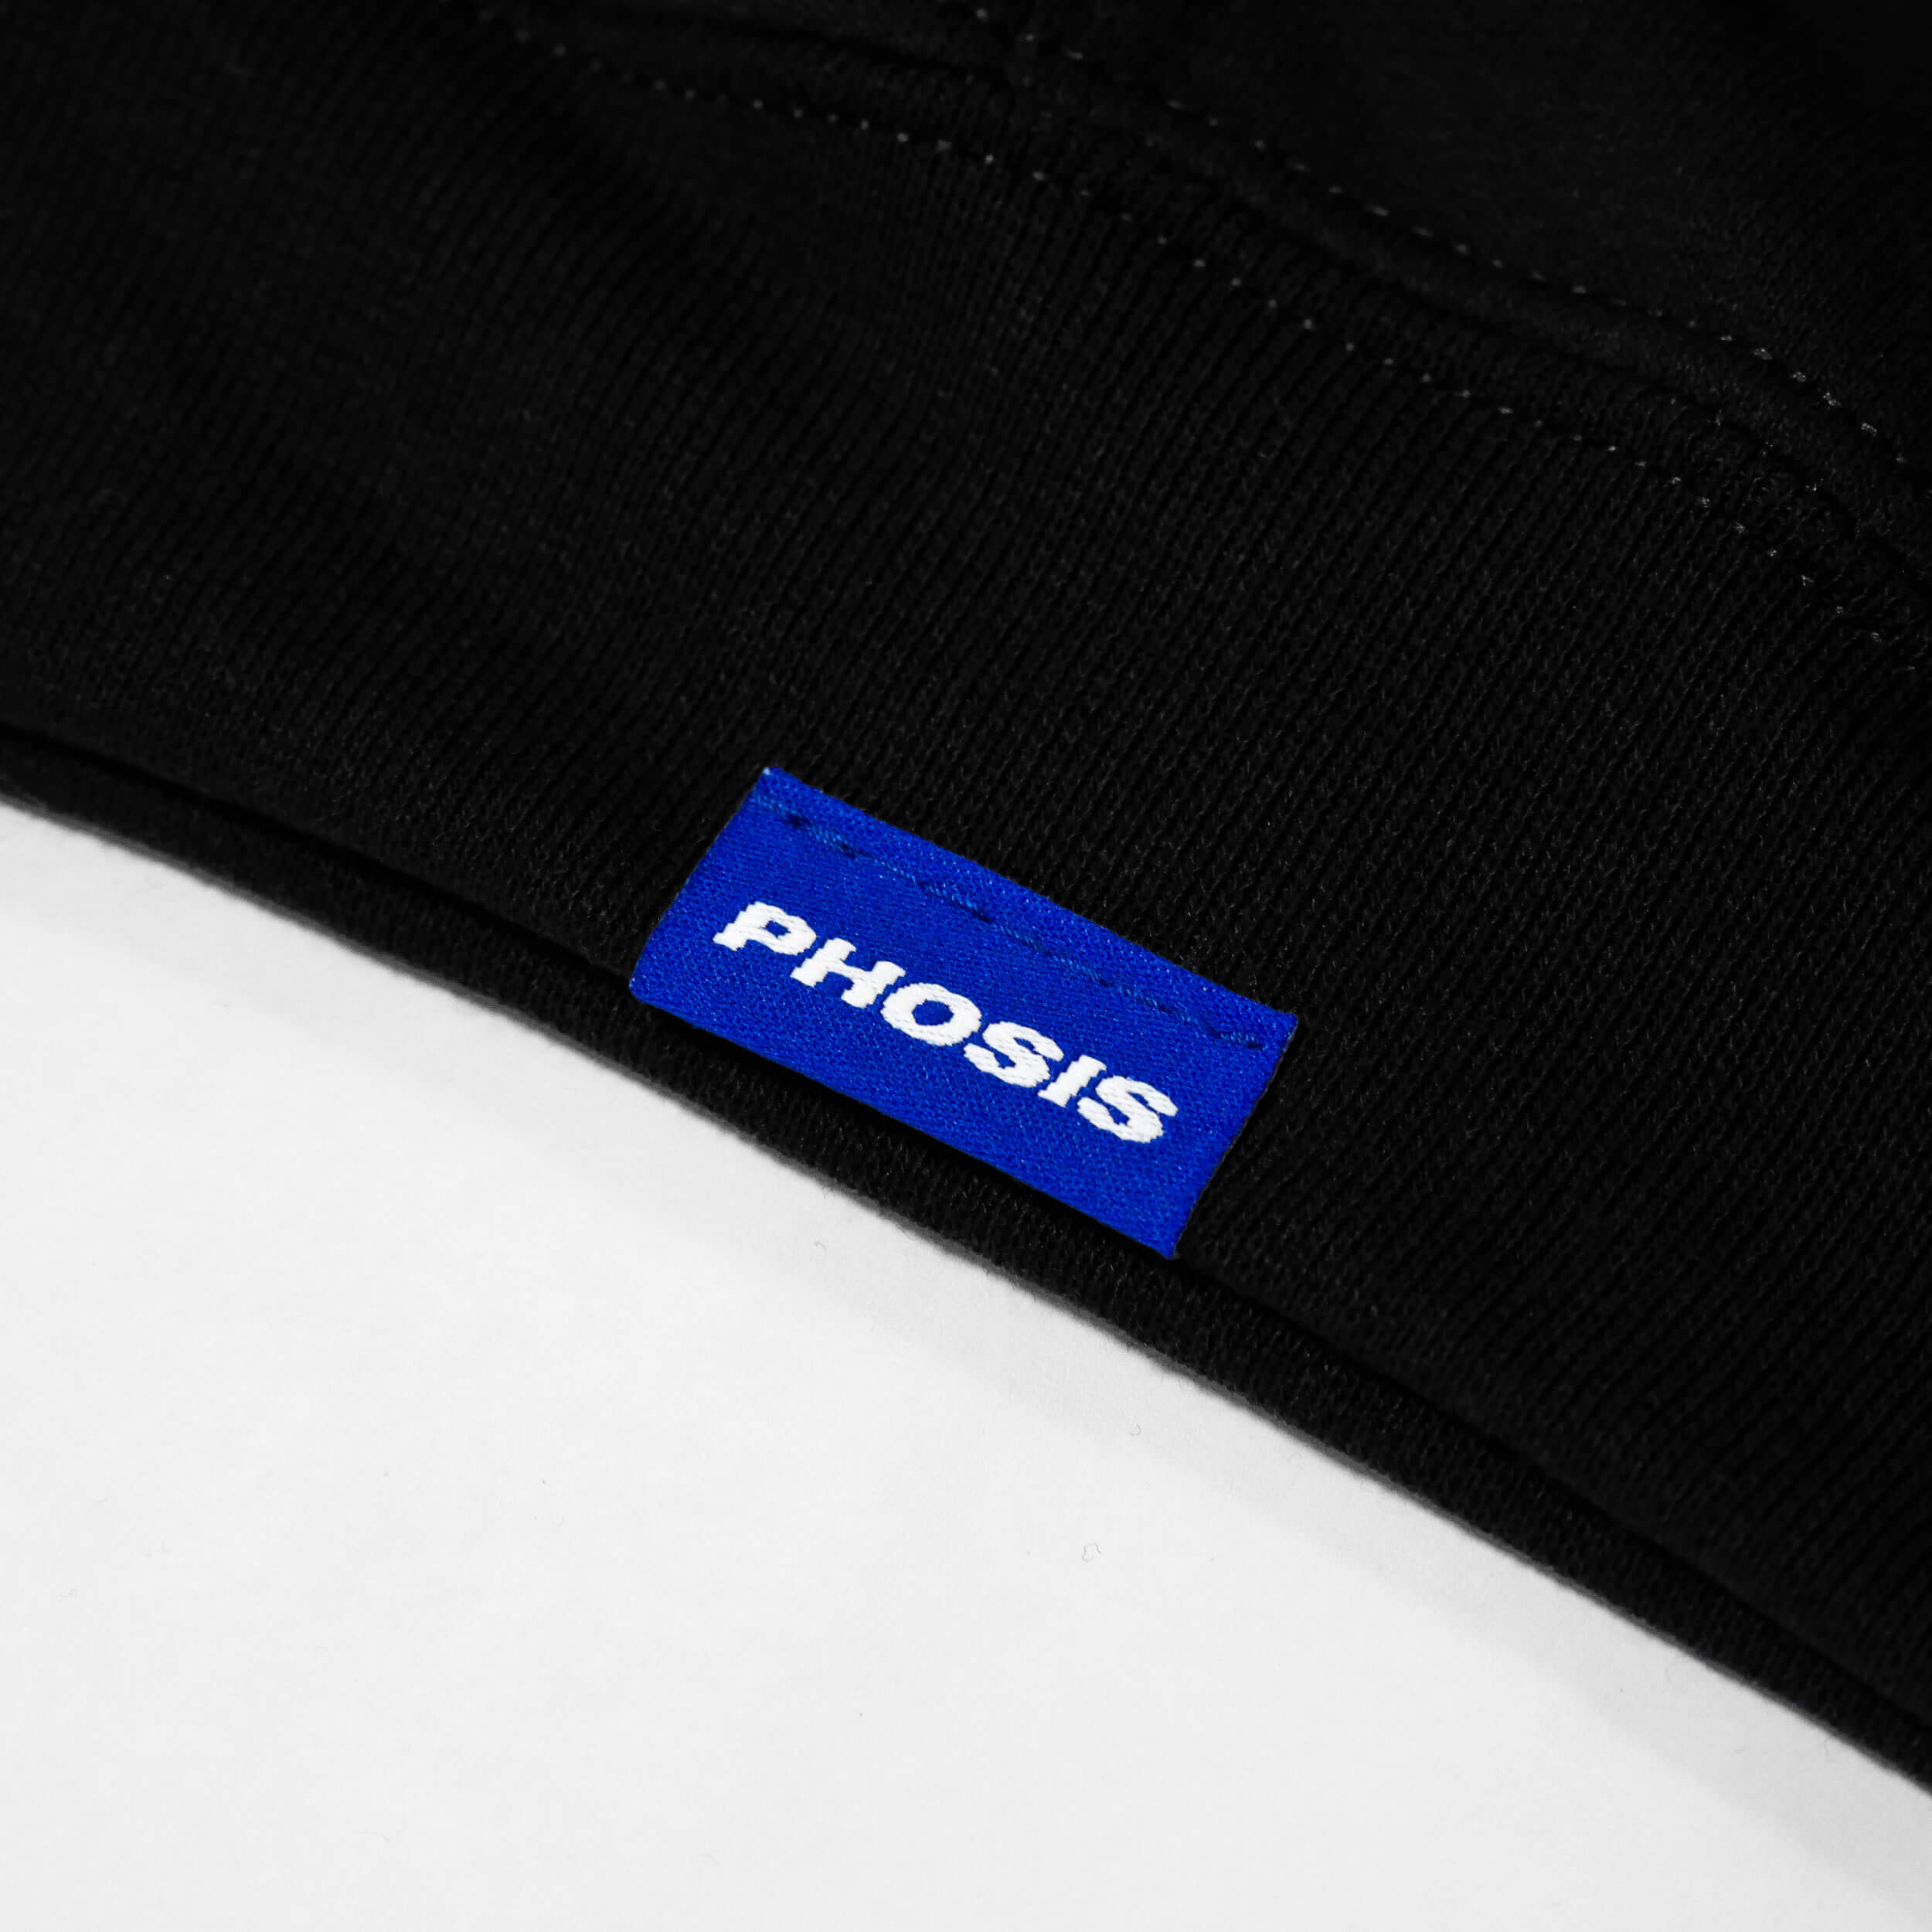 Close up view of the blue woven label in the HOLOCENE black hoodie from PHOSIS Clothing